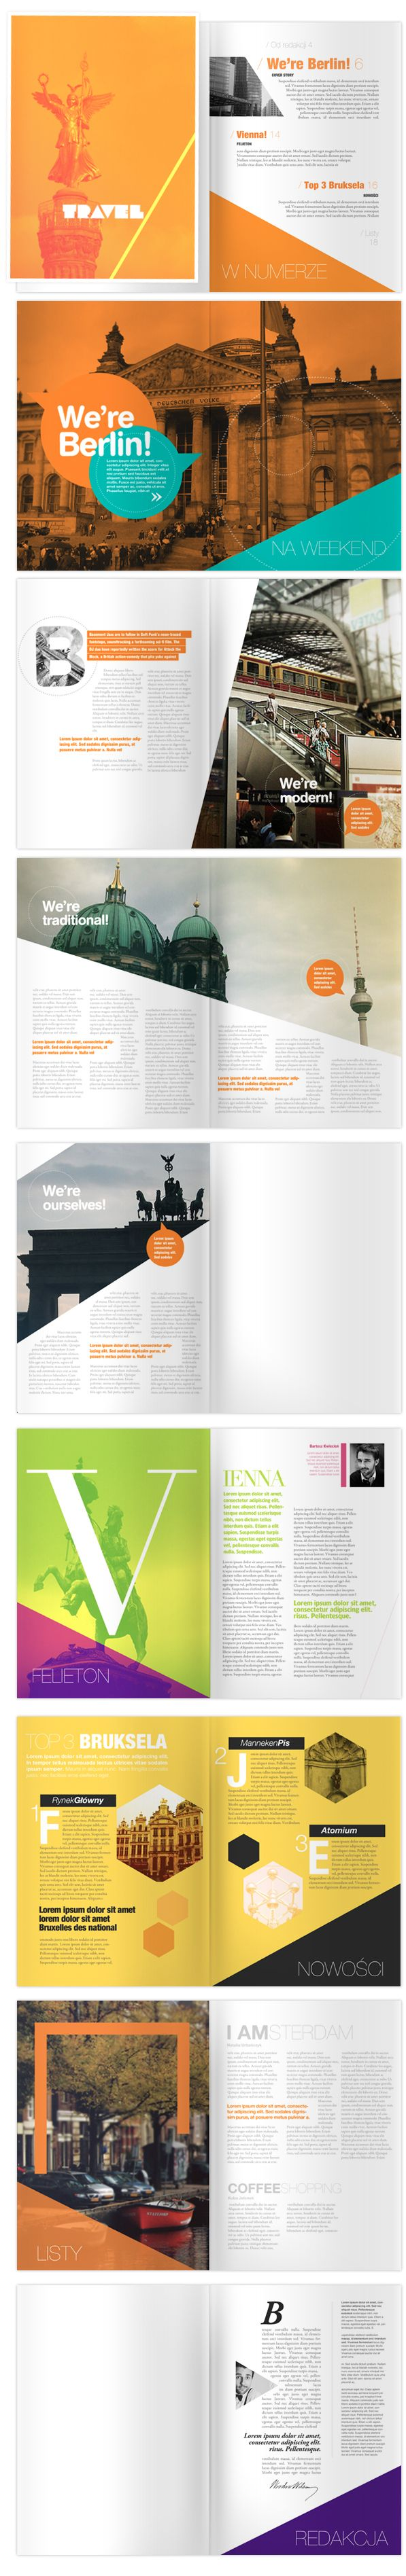 TRAVEL Magazine, good editorial graphic design